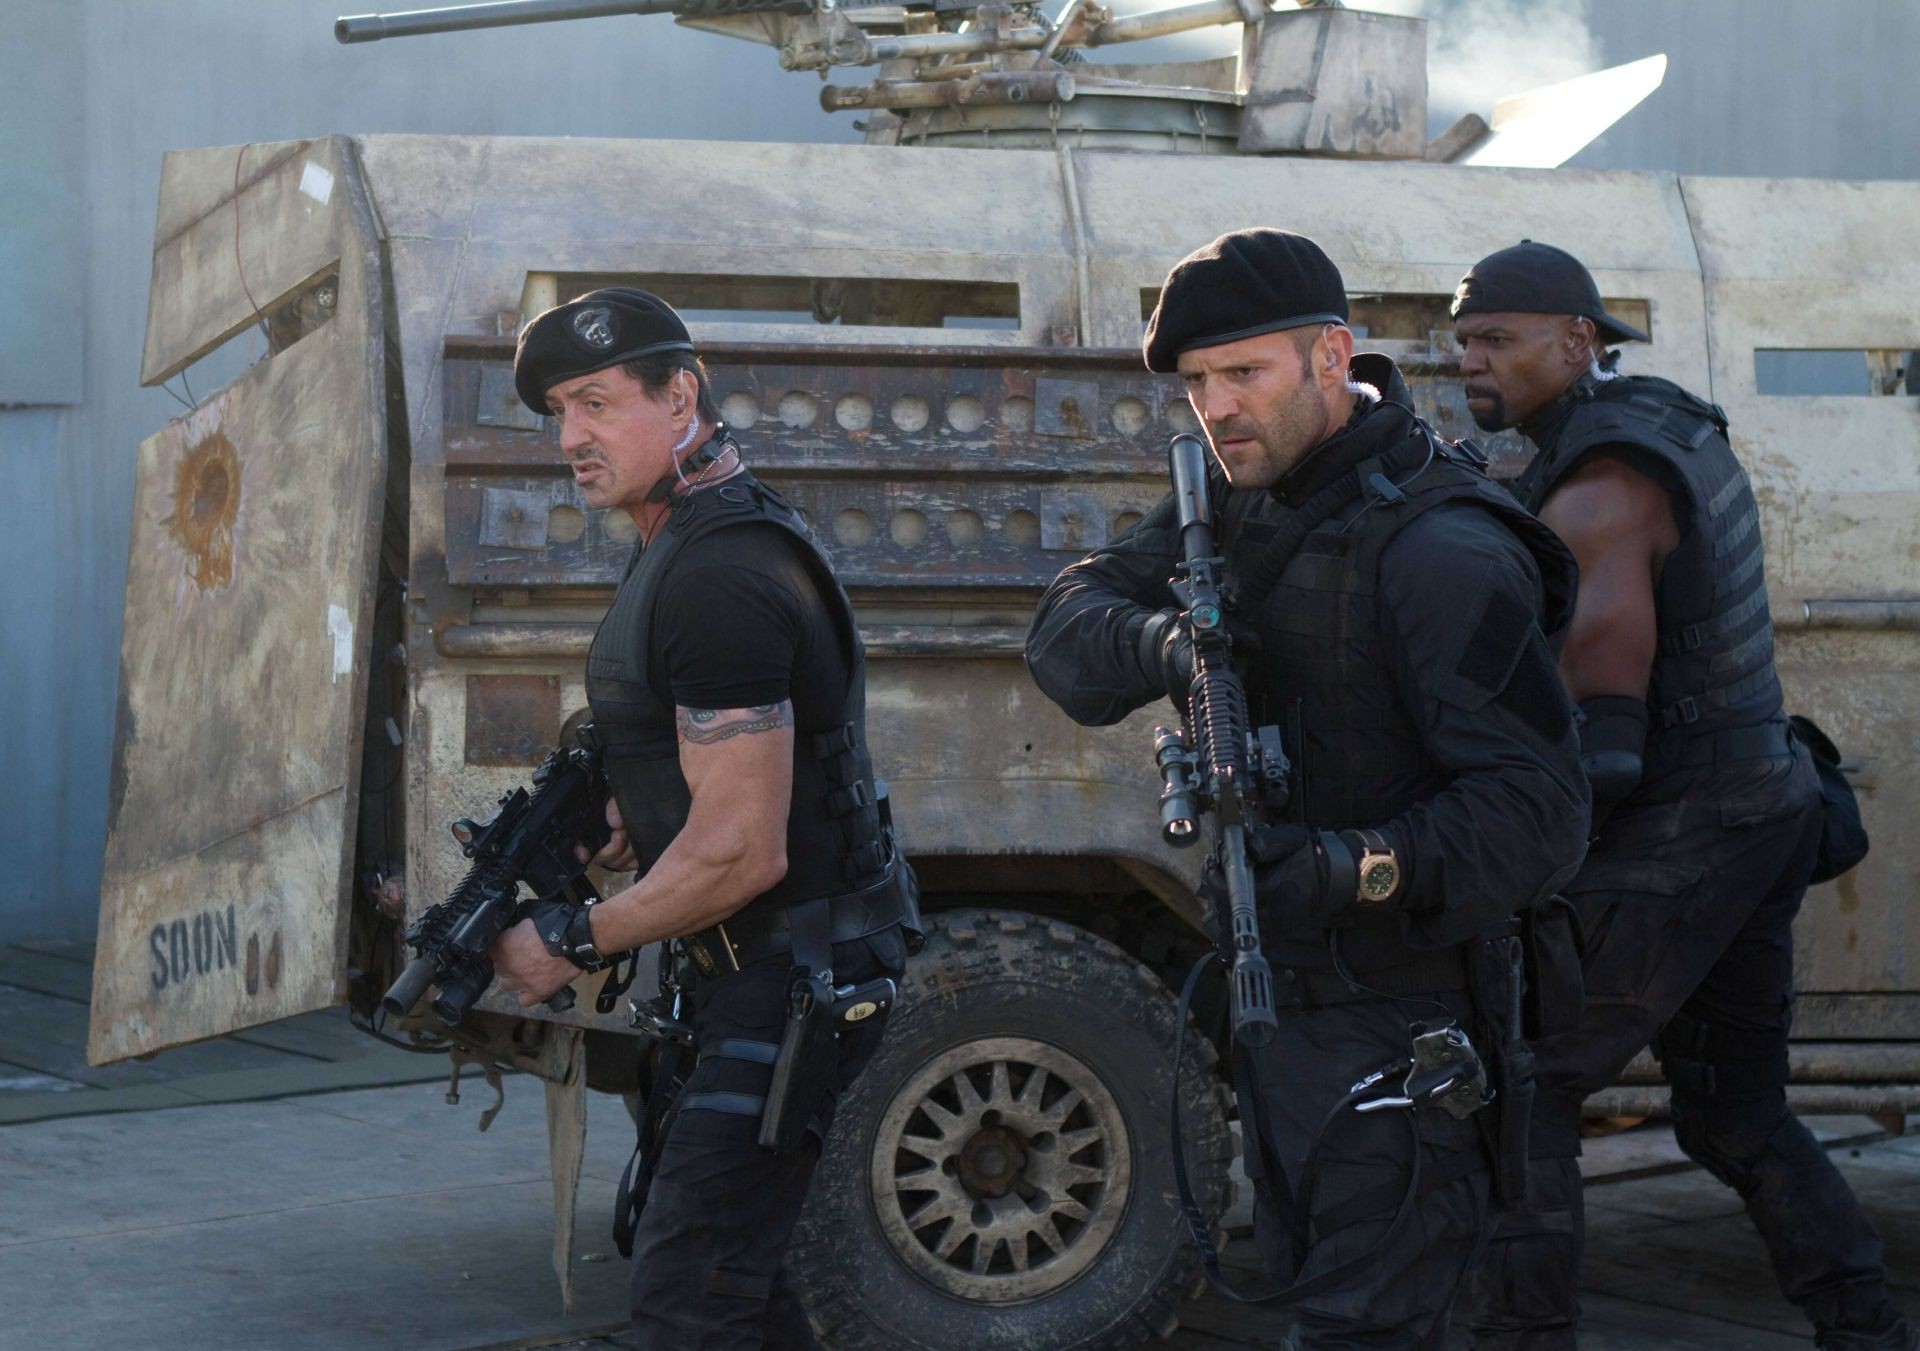 Sylvester Stallone, Jason Statham and Terry Crews in Lionsgate Films' The Expendables 2 (2012)